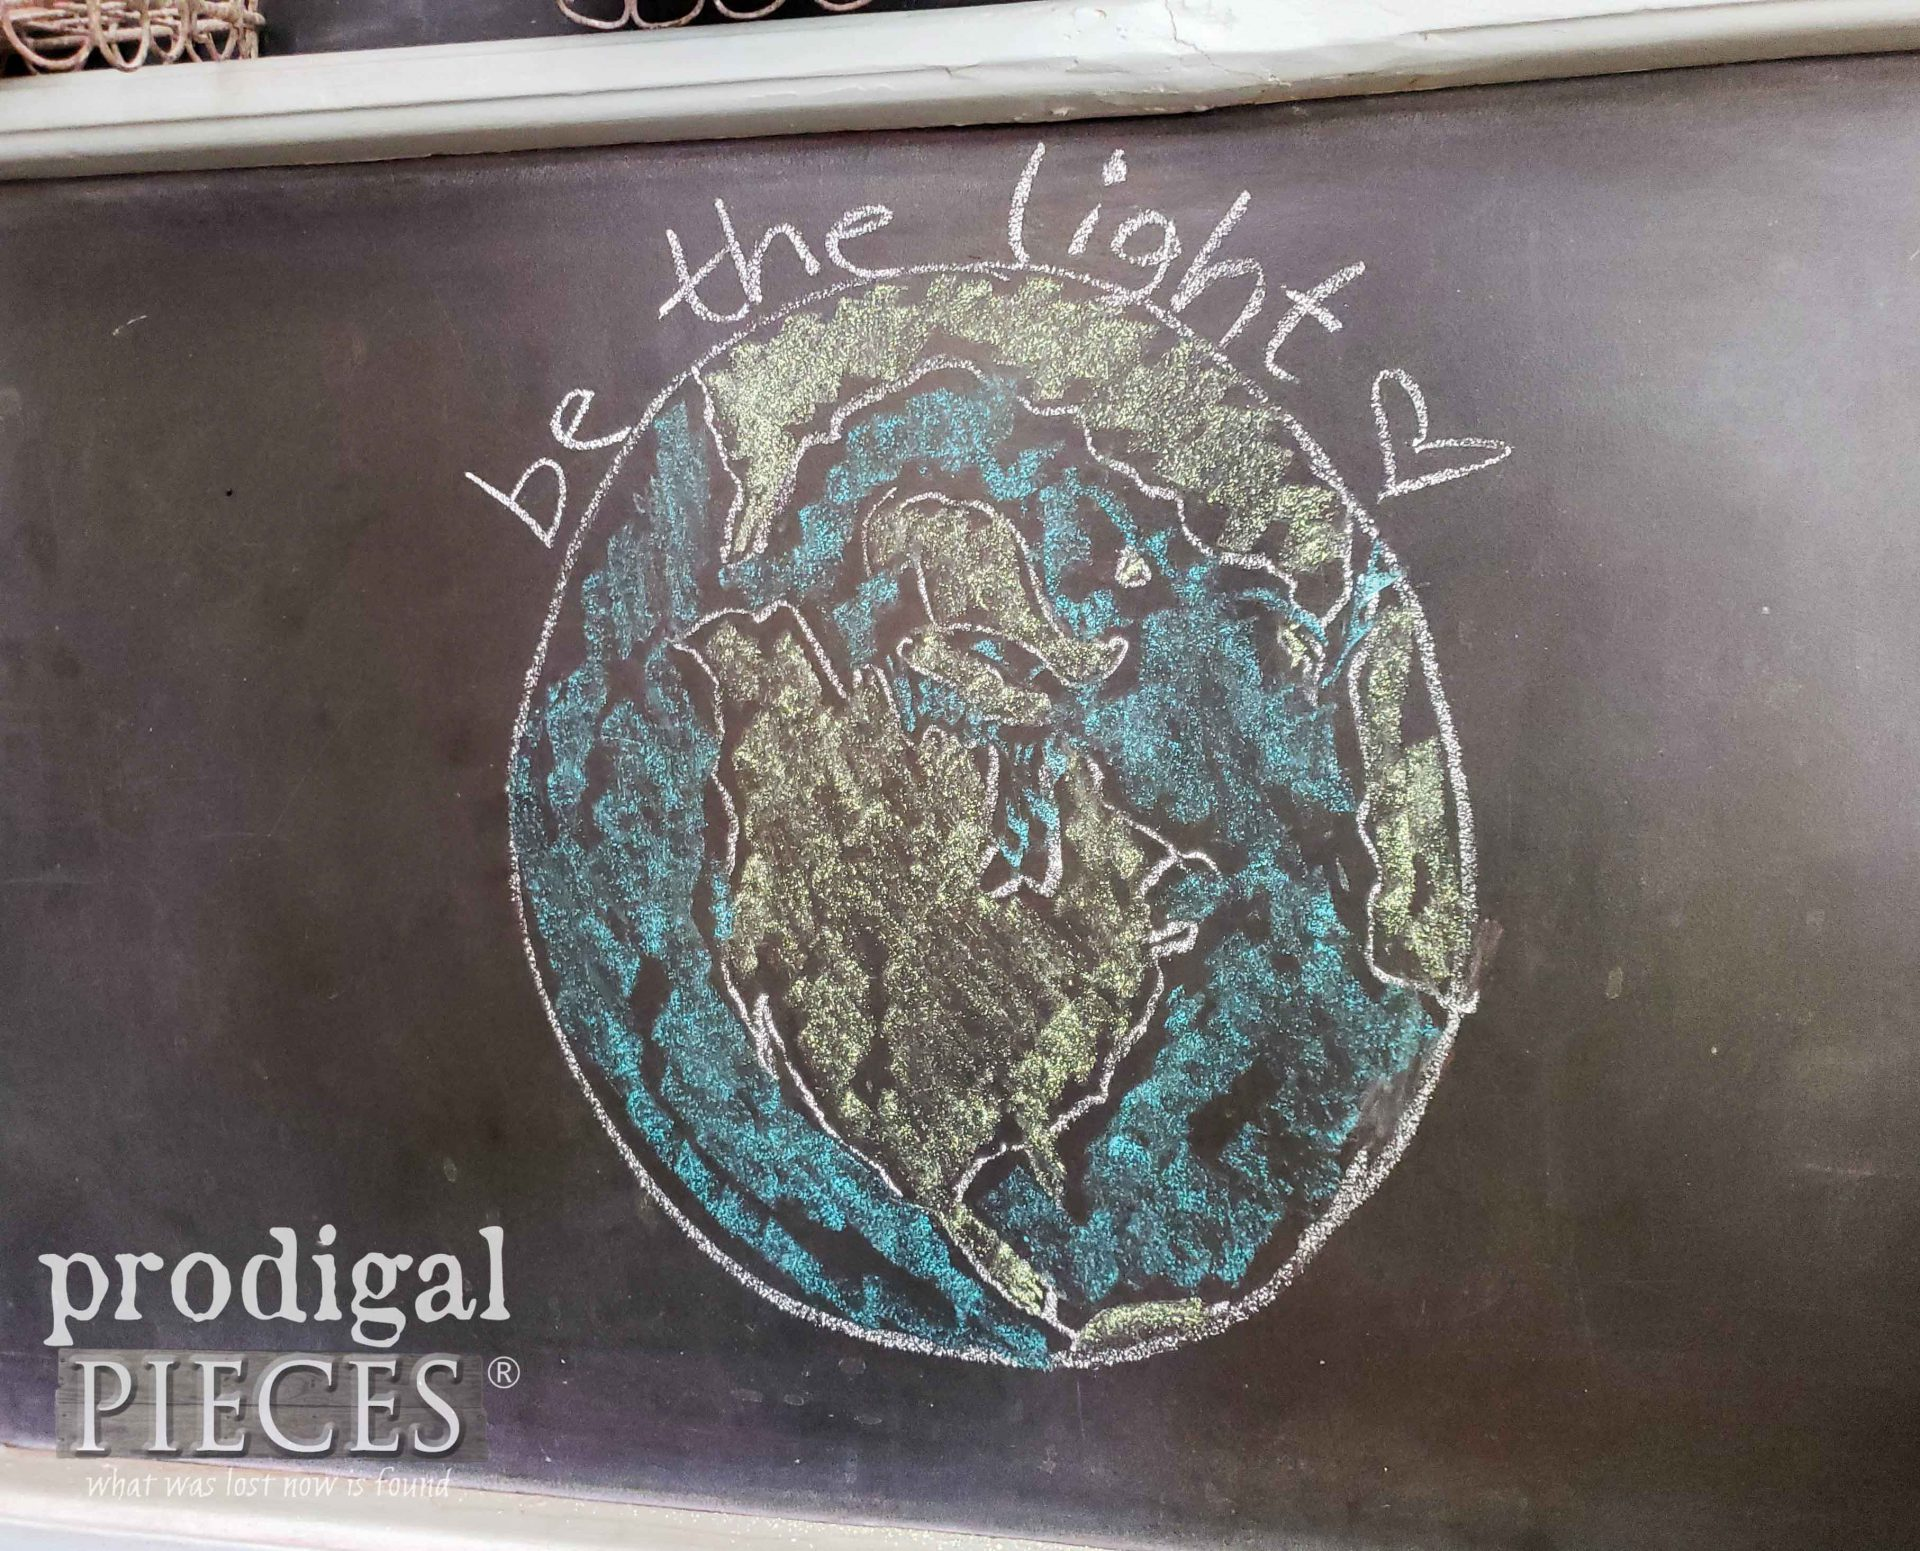 Globe Chalkboard Art by Larissa of Prodigal Pieces | prodigalpieces.com #prodigalpieces